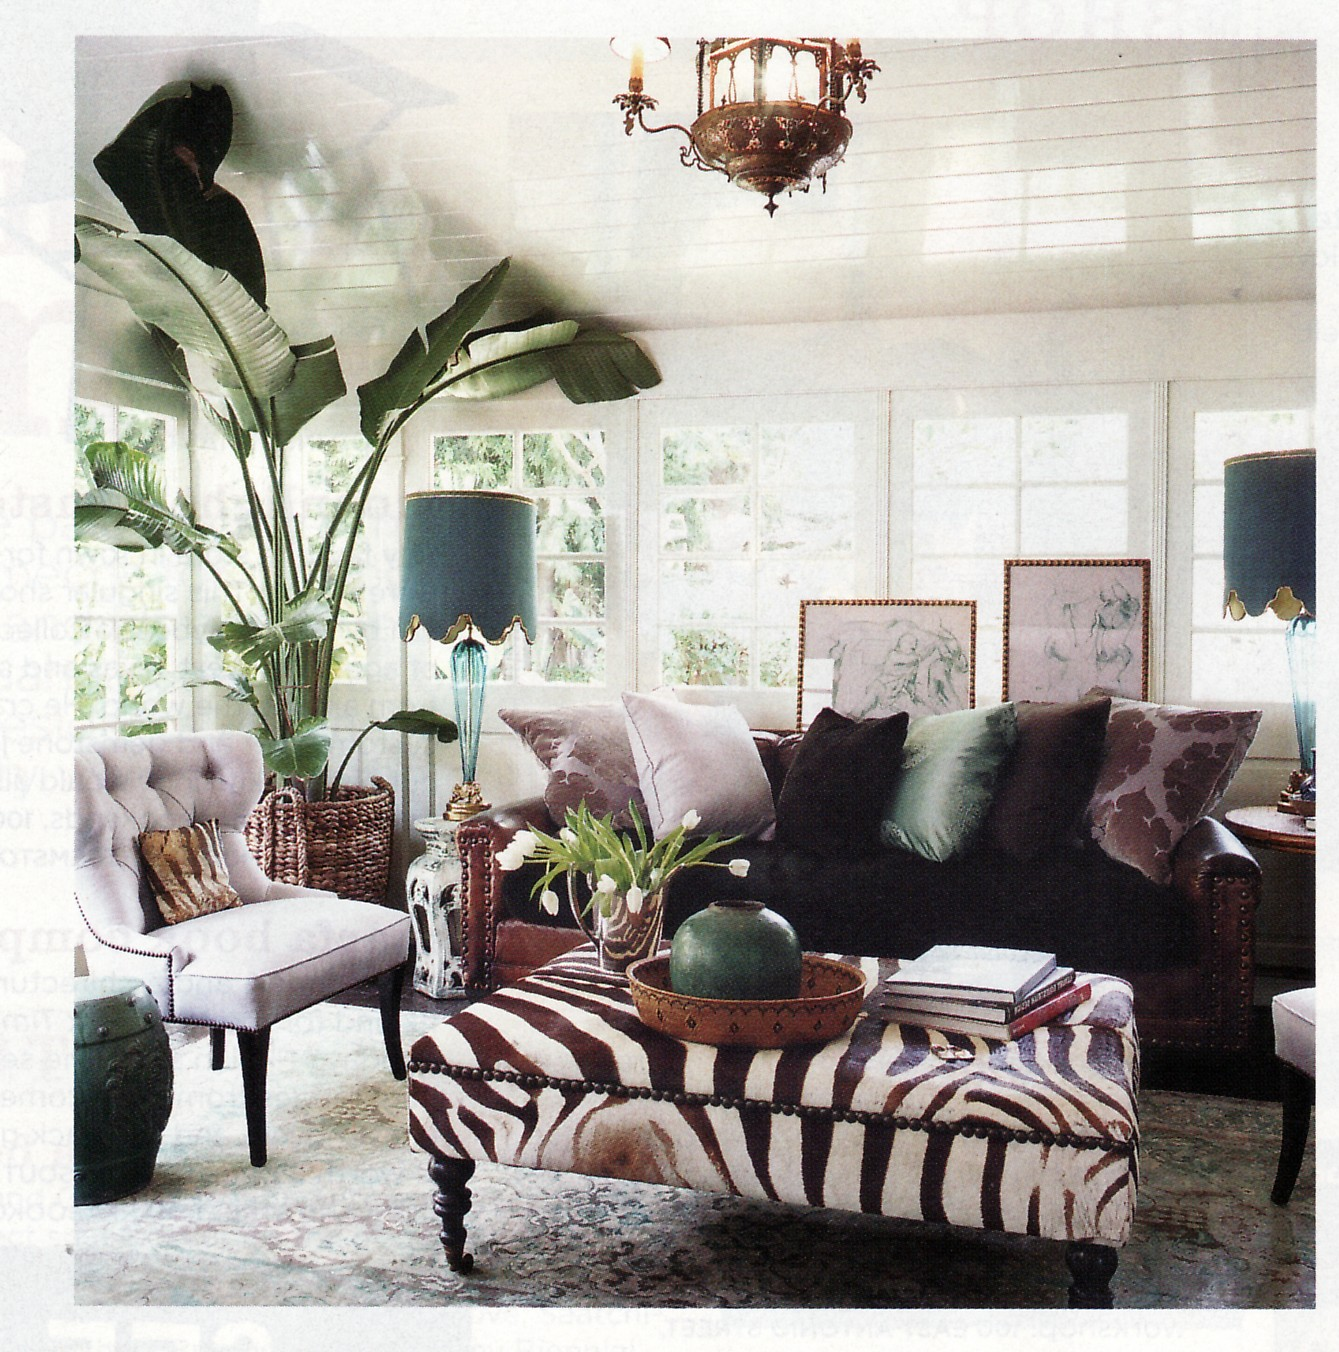 Rachel hazelton interior design style file boho chic for Room decor zebra print